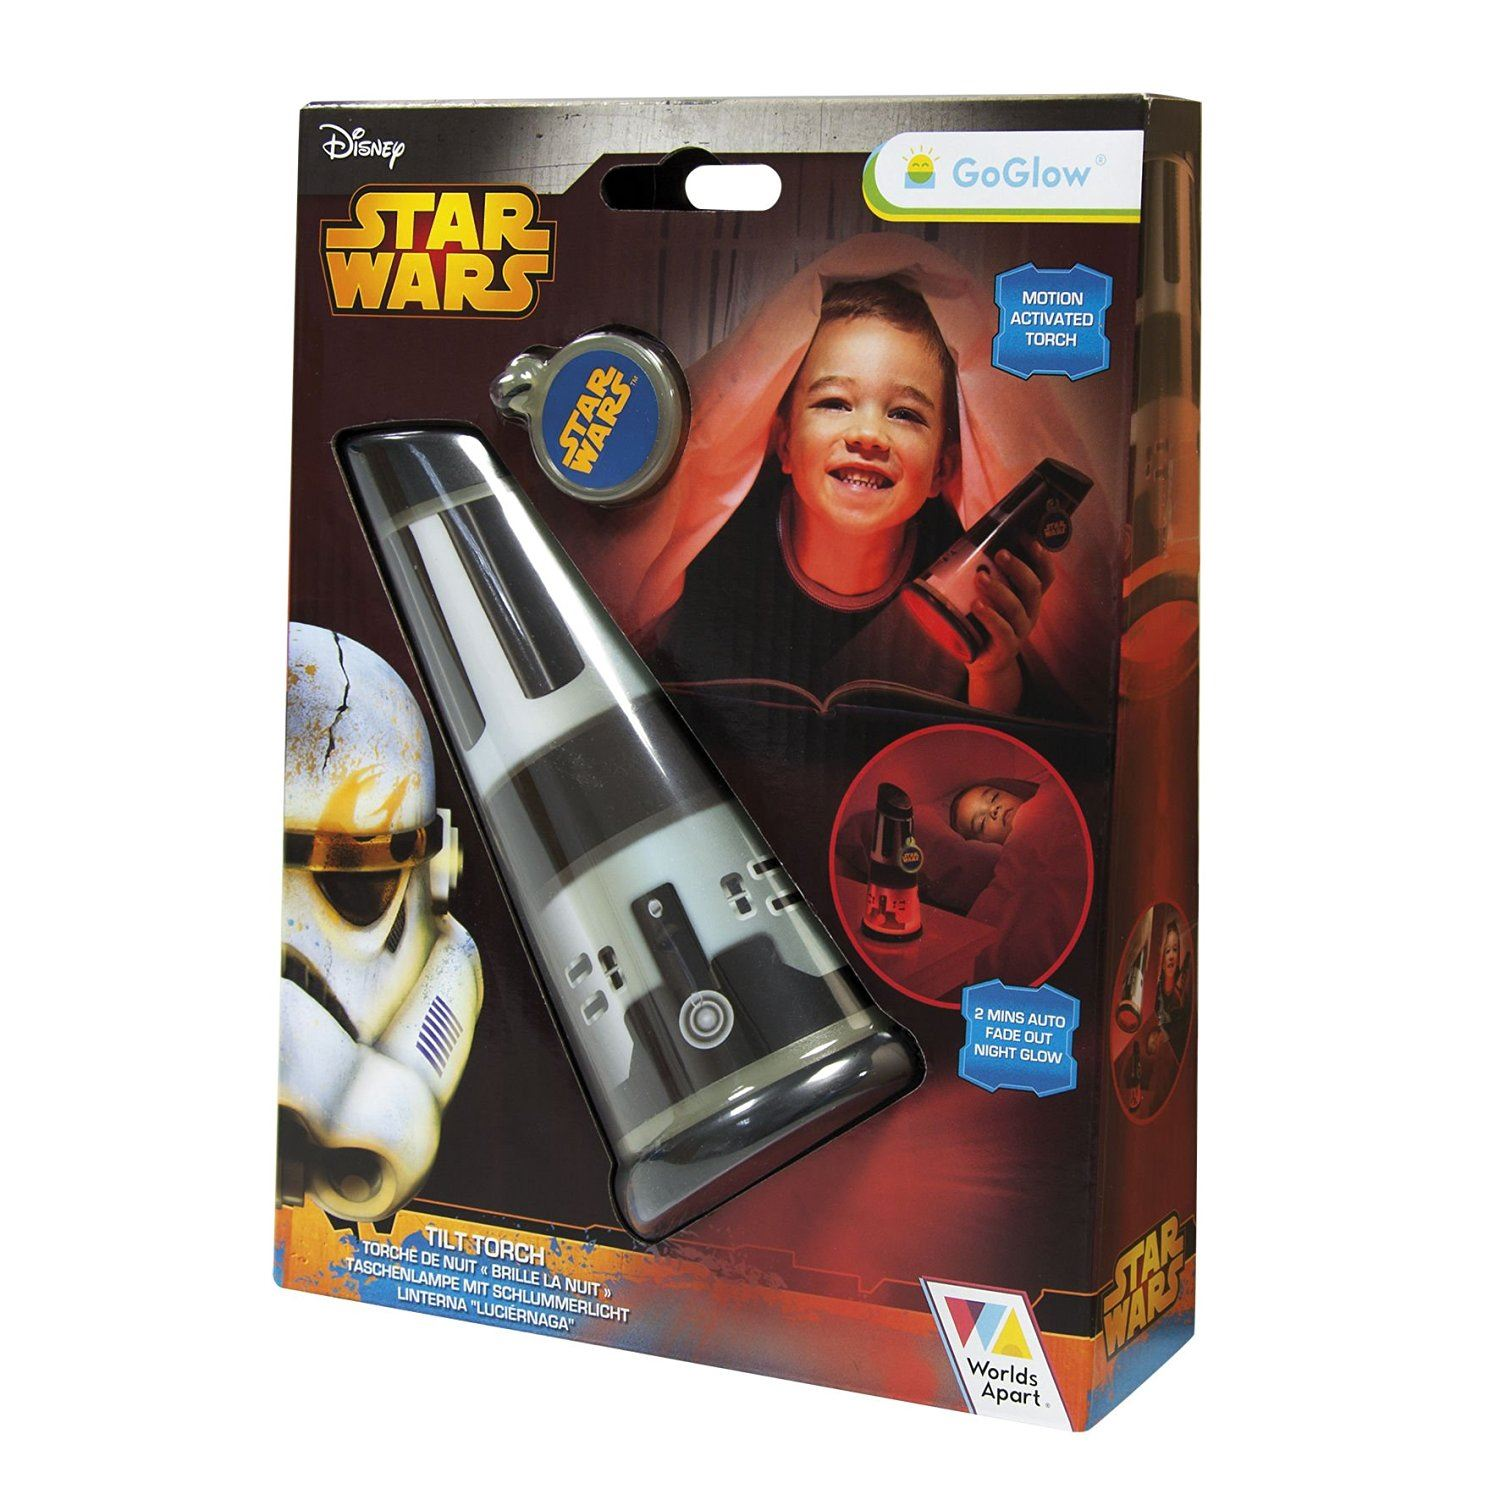 Star Wars Go Glow Tilt Torch And Night Light